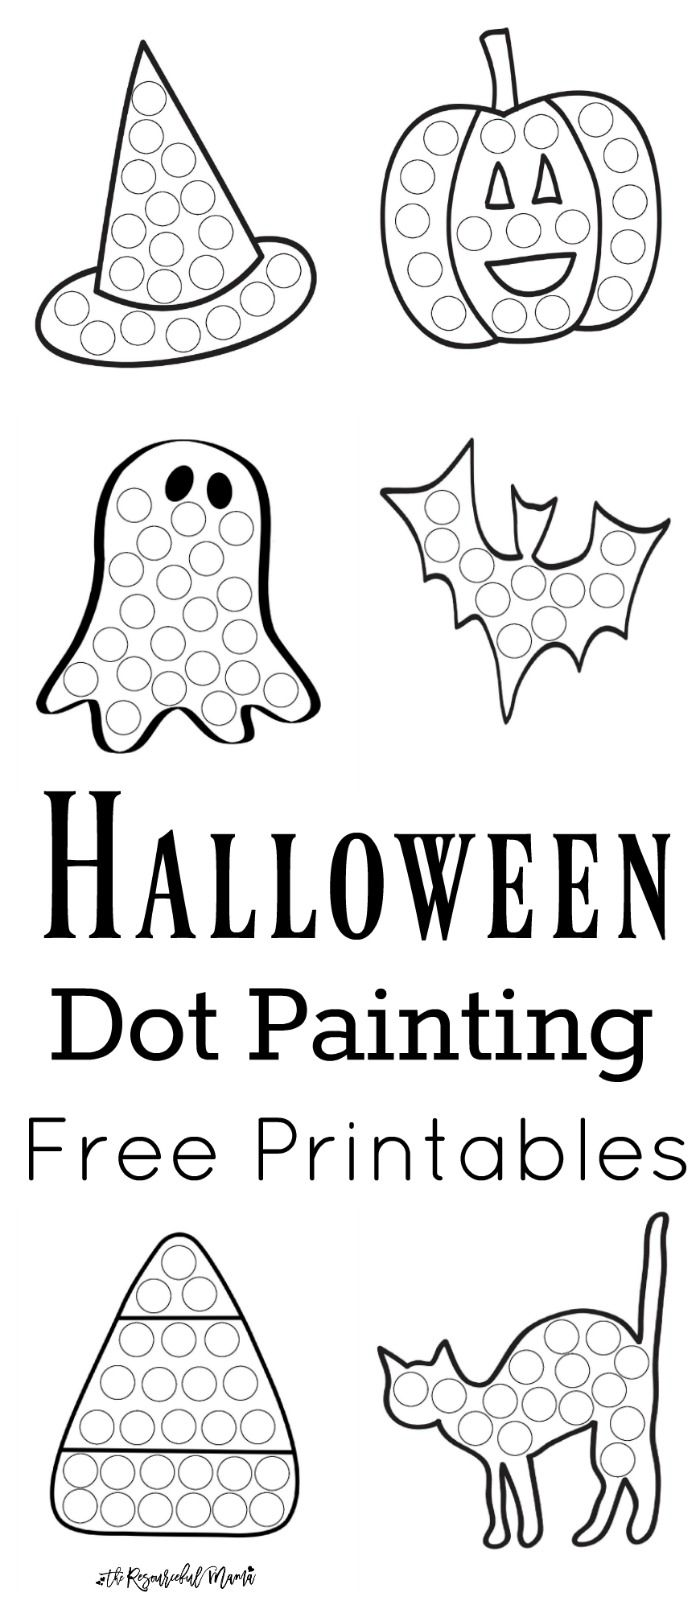 Uncategorized Halloween Preschool Worksheets best 25 halloween worksheets ideas on pinterest preschool dot painting free printables